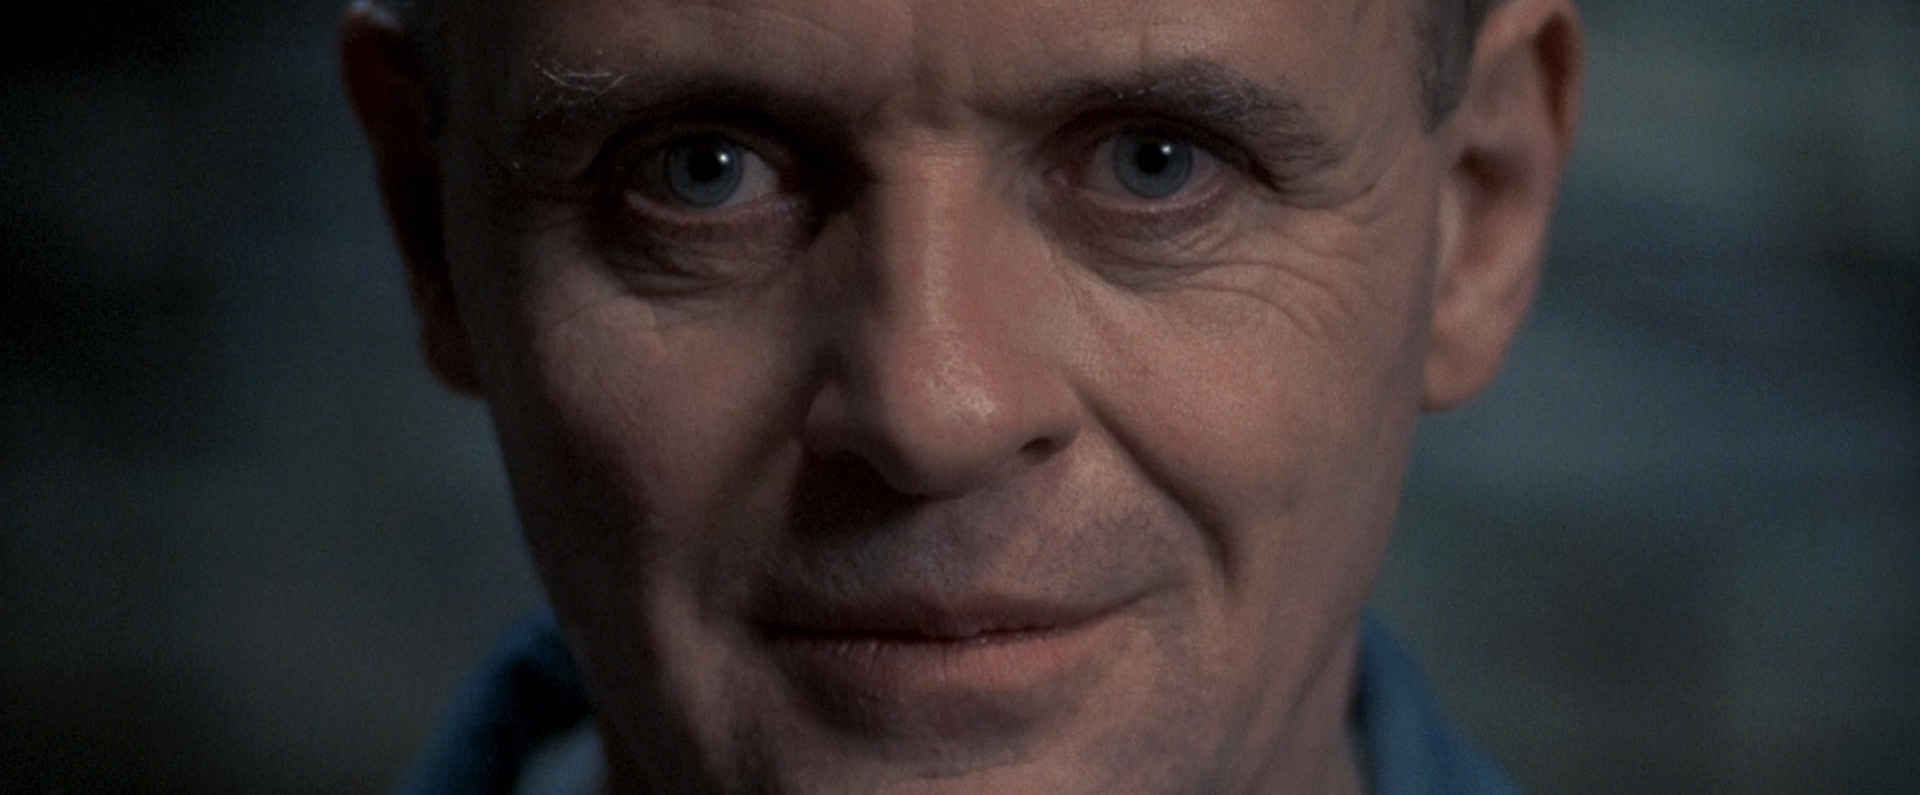 Silence of the Lambs | Hannibal Lector 01.jpg